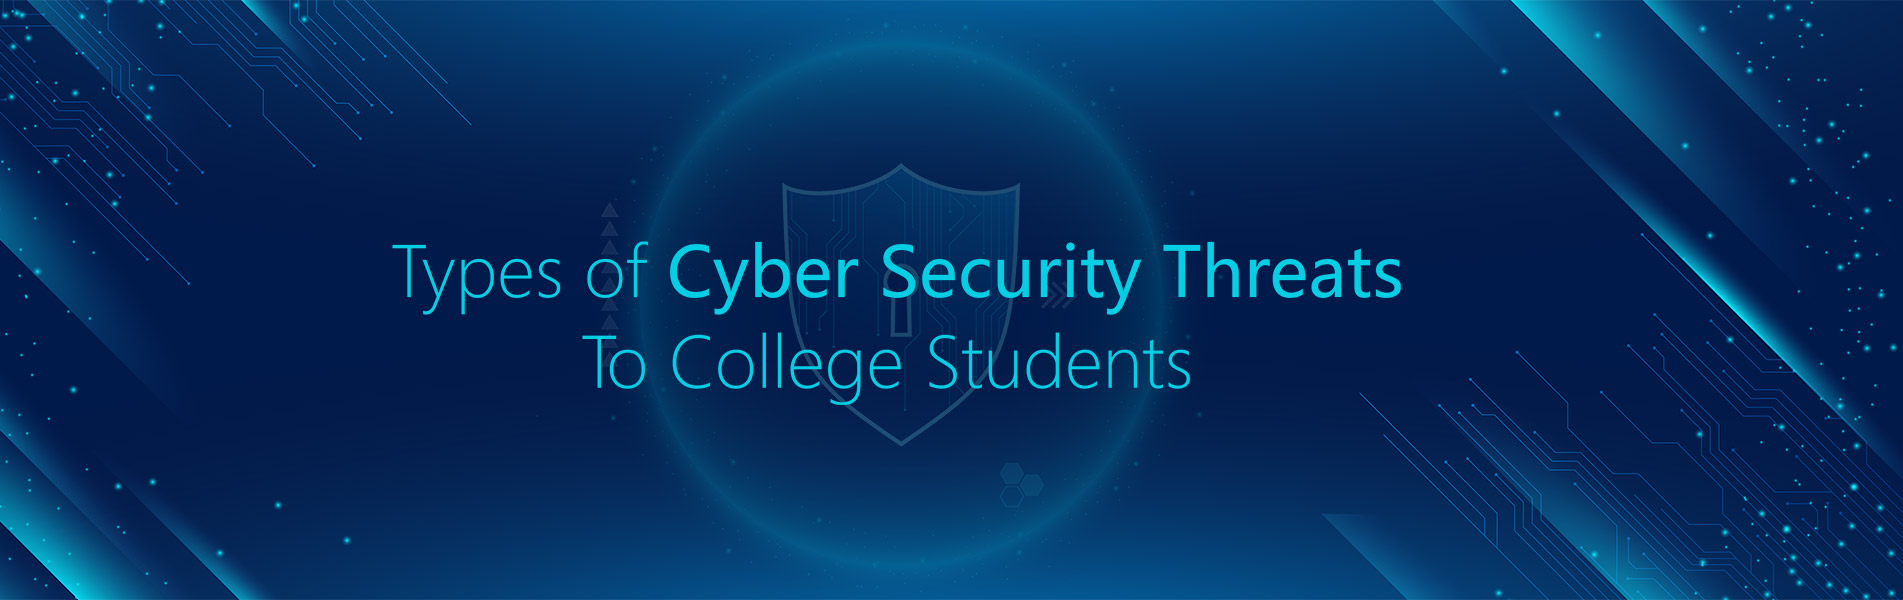 Types of cybersecurity threats to college students